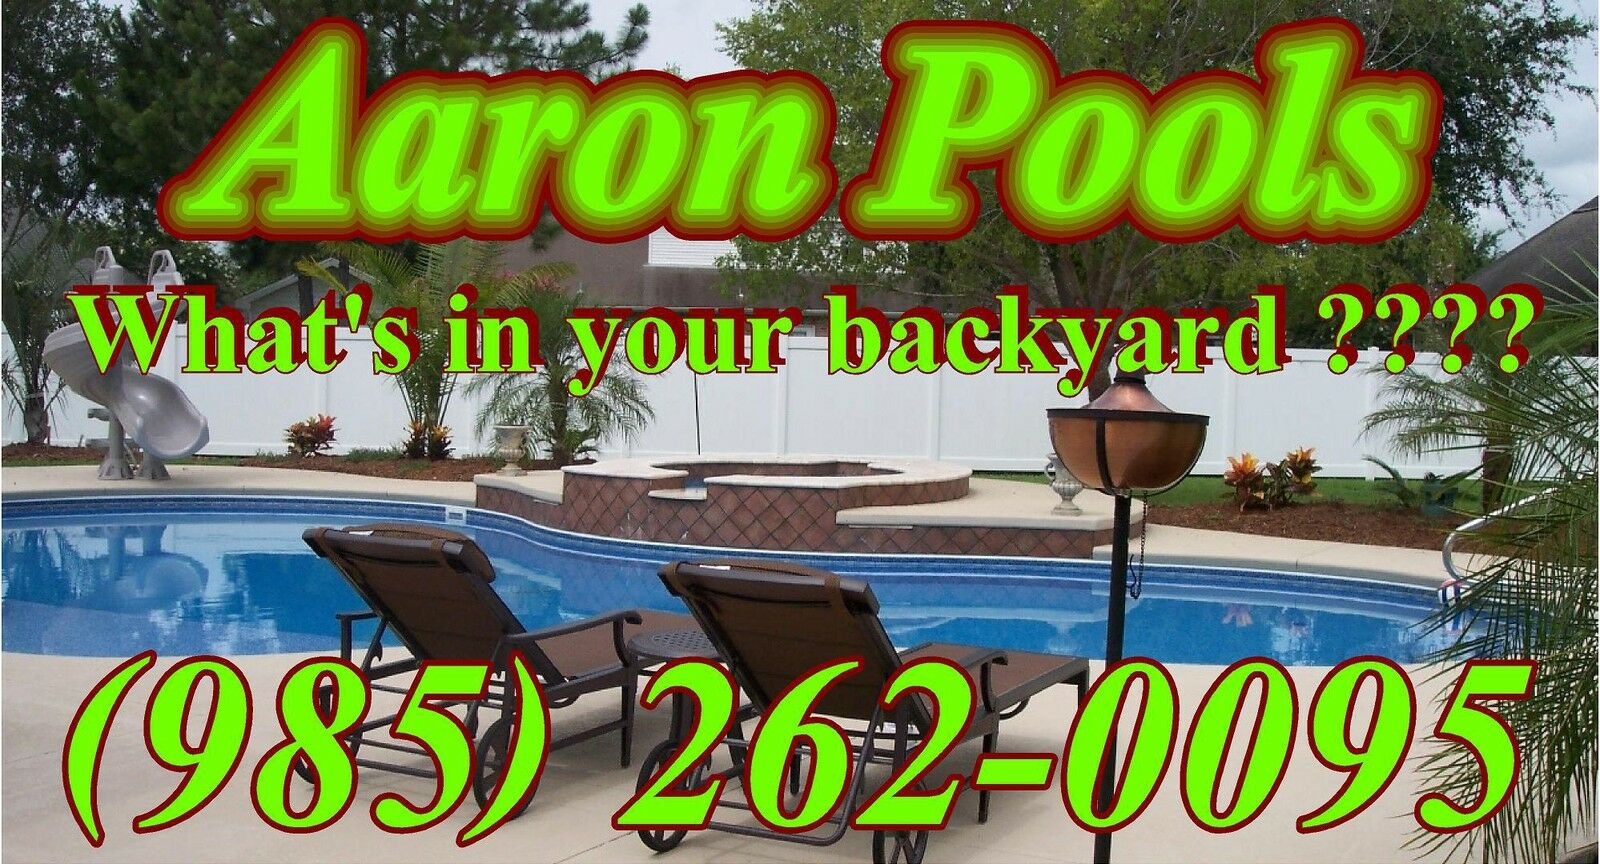 Aaron Pools and Patio